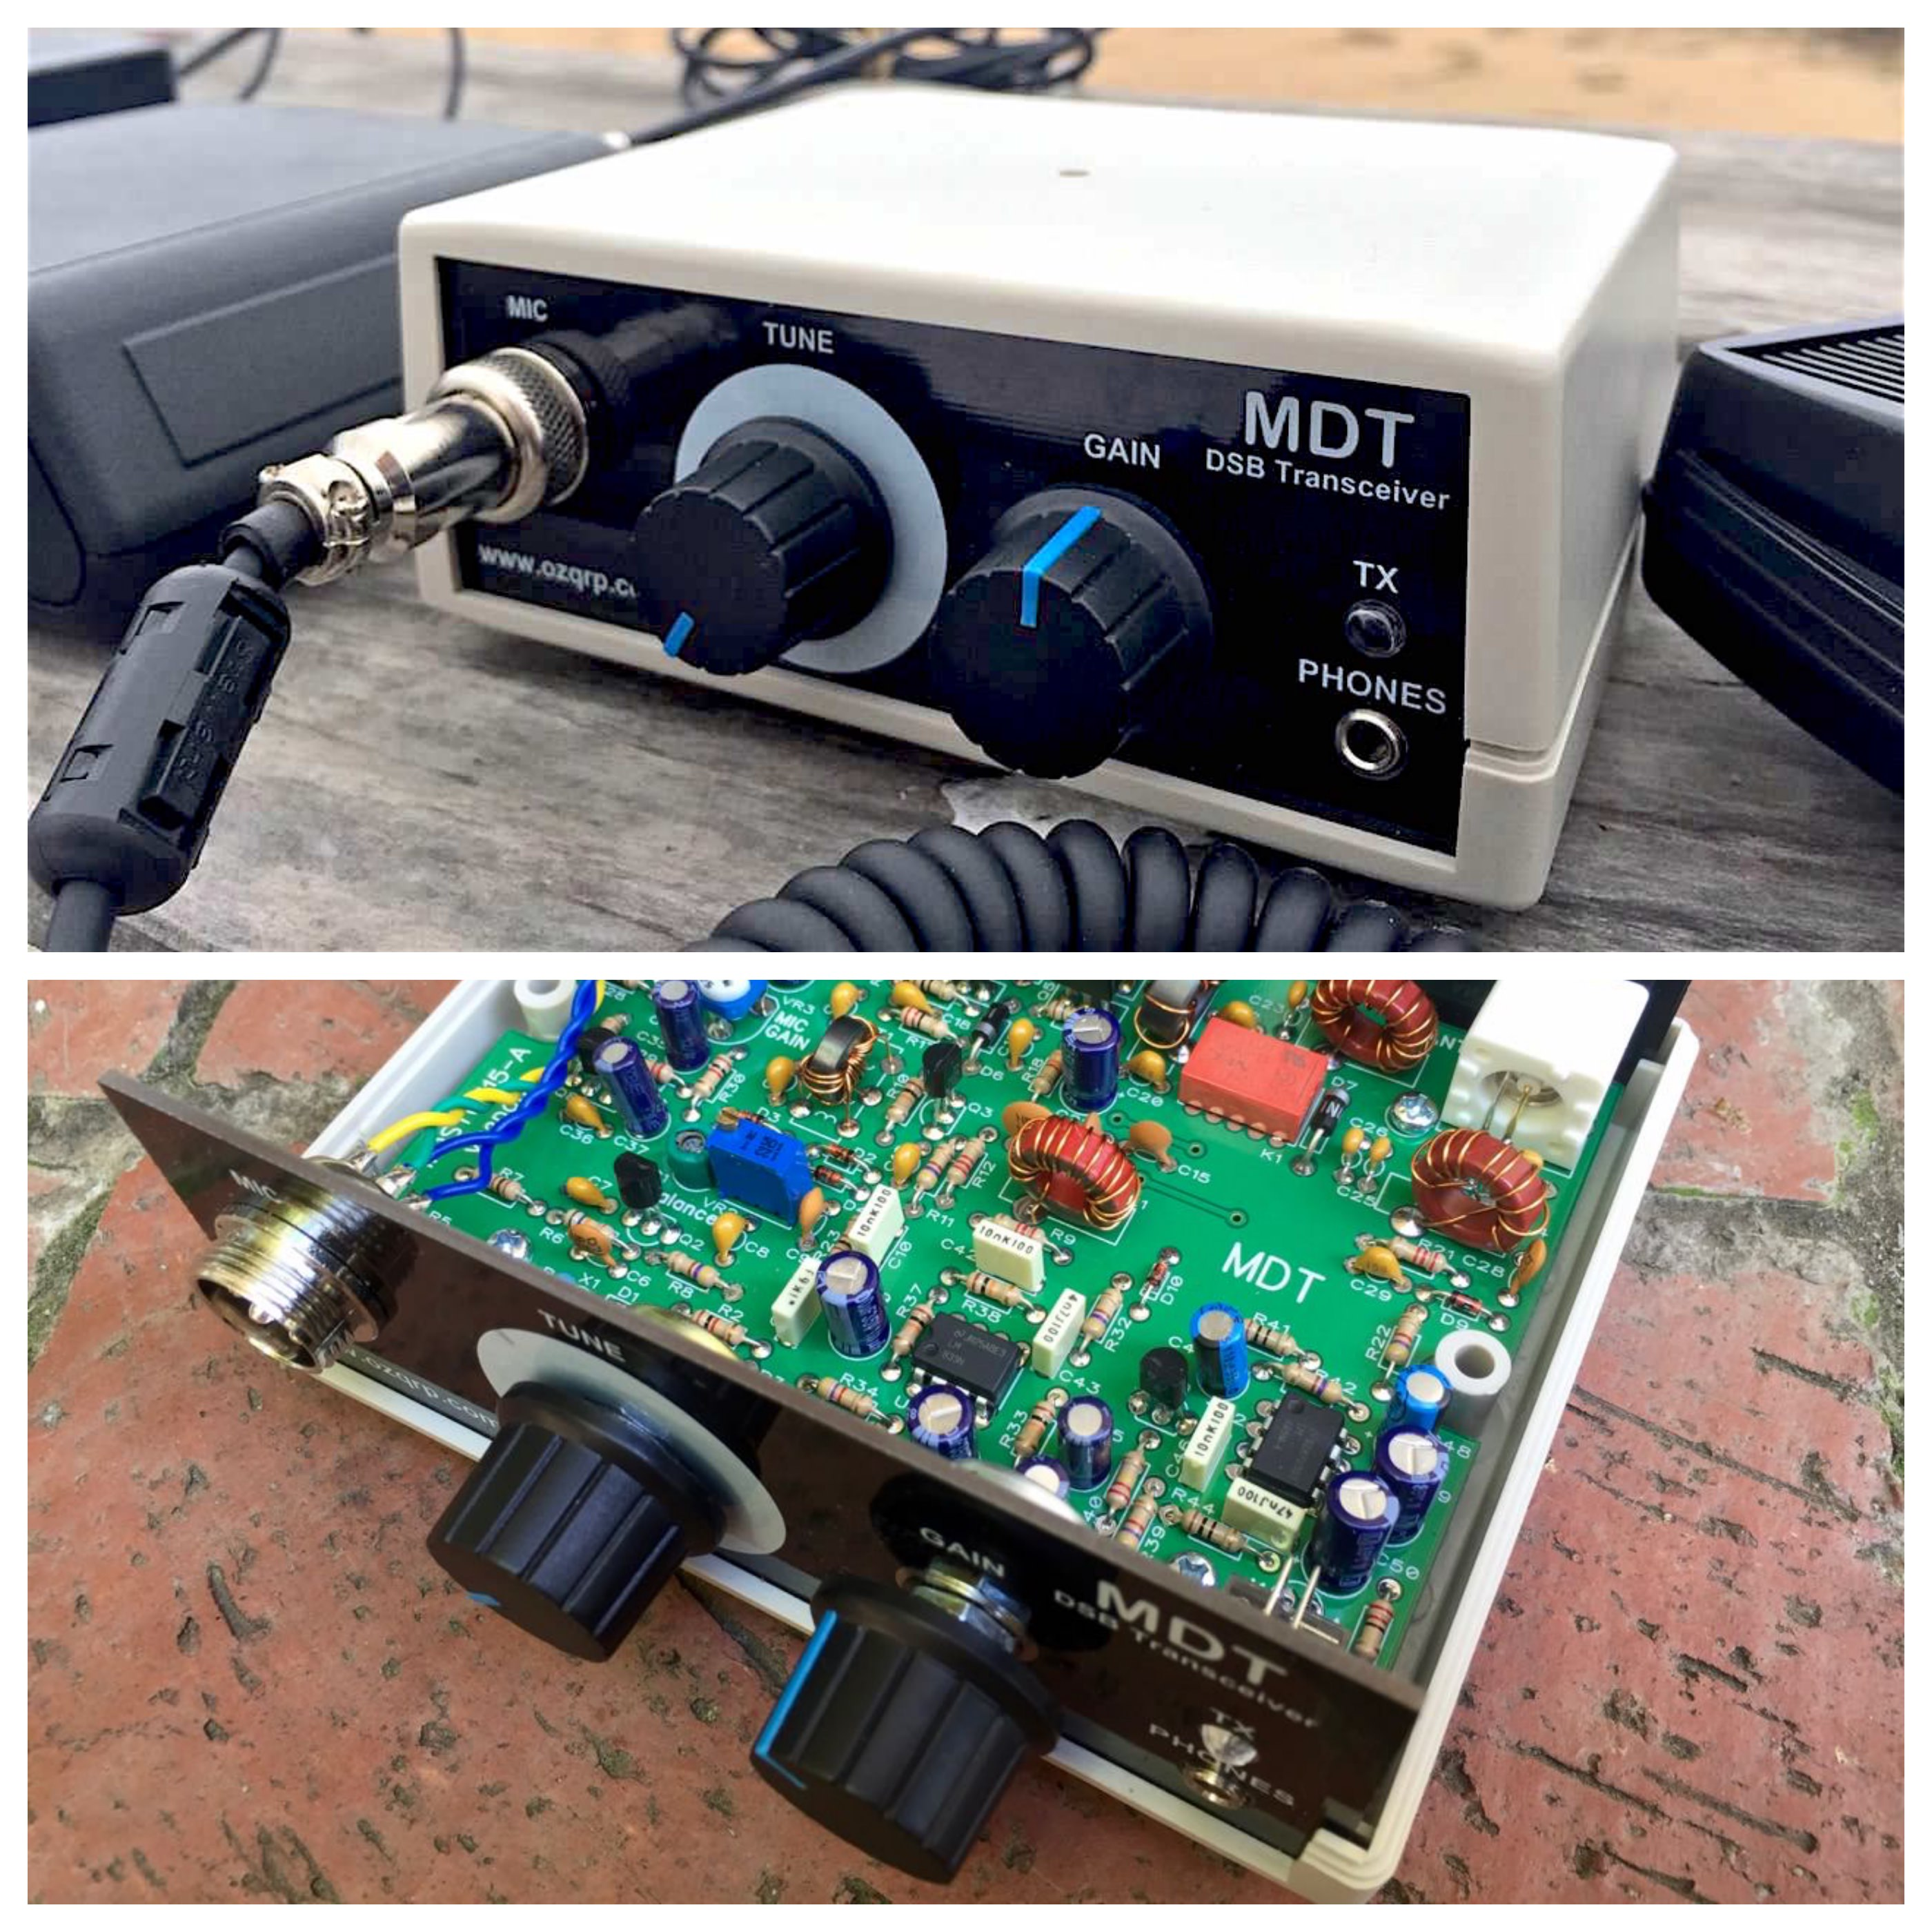 MDT 40m Ham Radio QRP Transceiver Kit – The Tech Examiner